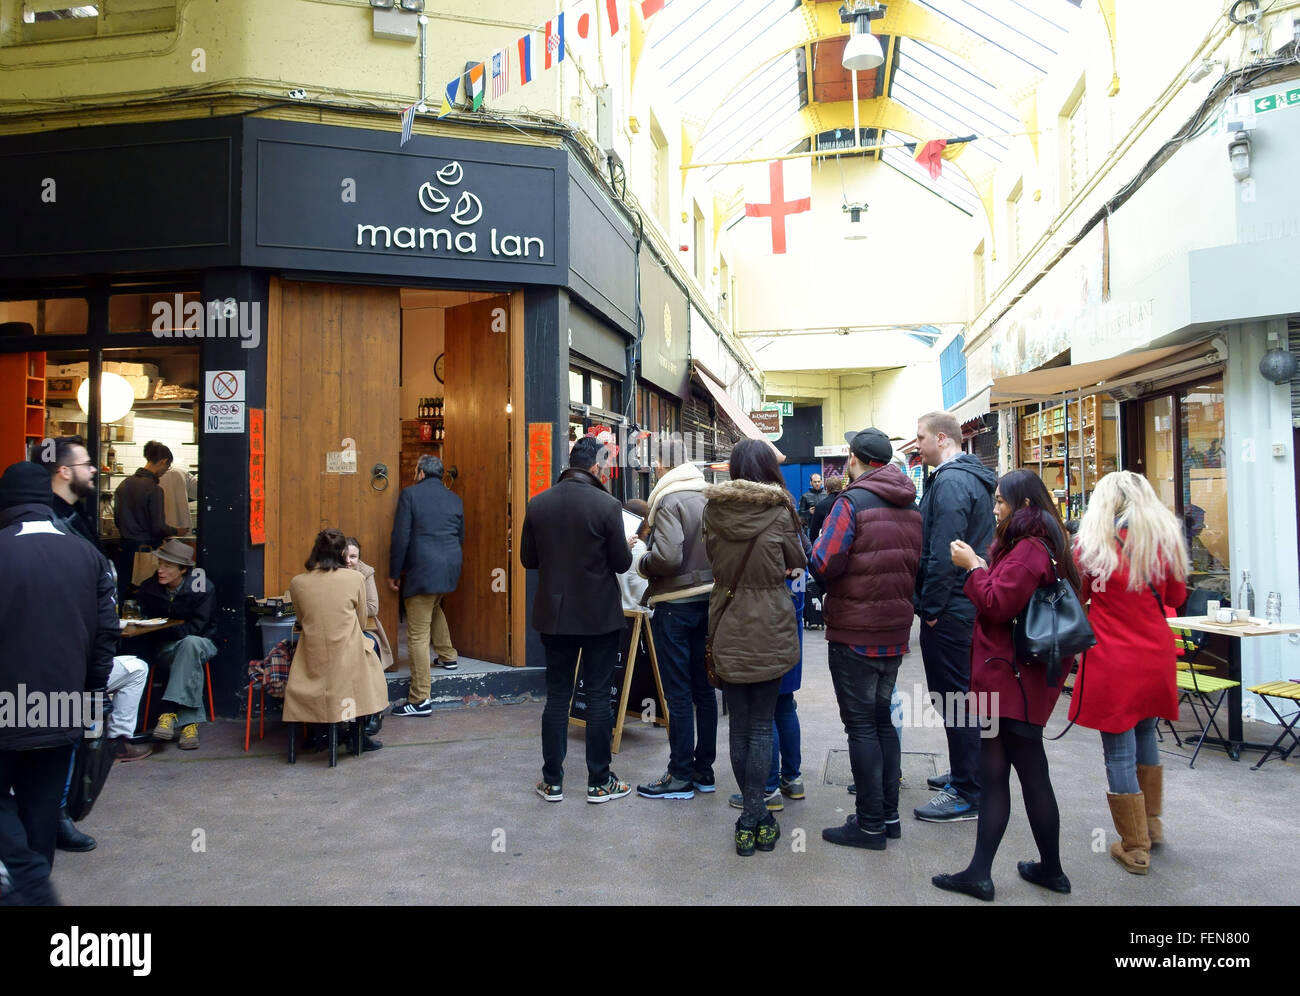 Customers queue outside Mama Lan Chinese restaurant in Brixton Village Market, London - Stock Image